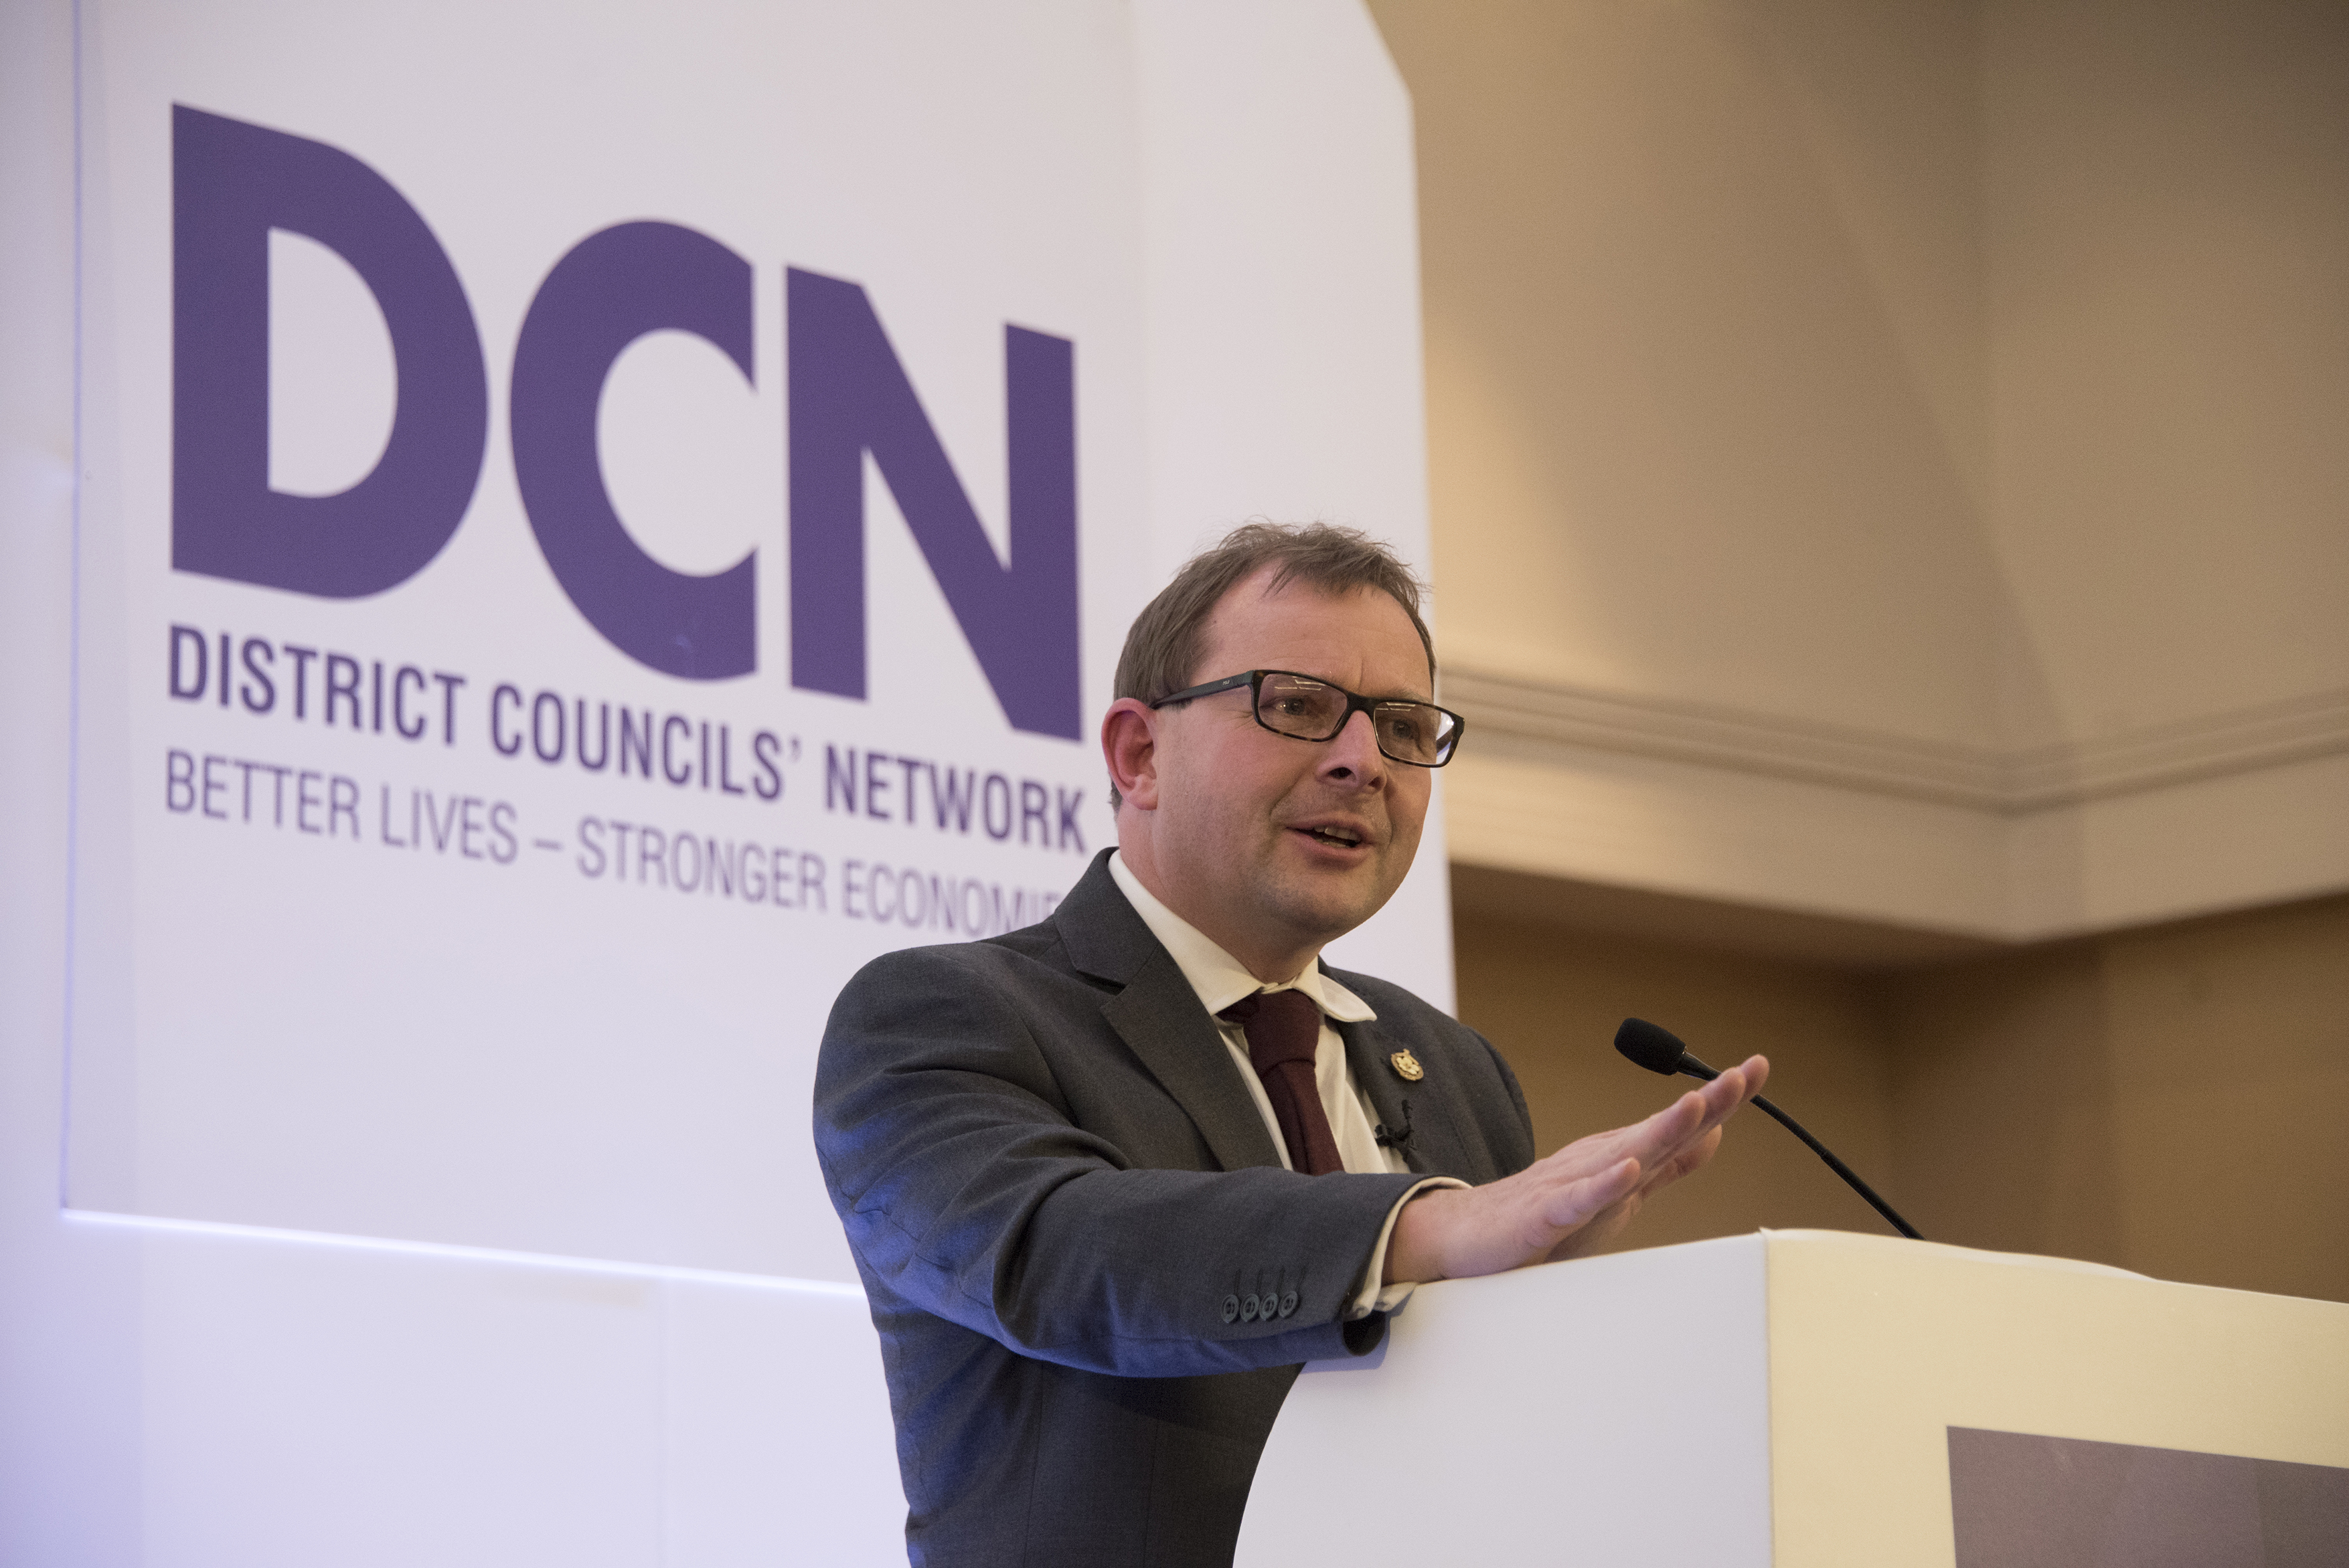 Cllr John Fuller, DCN Chairman – DCN Conference 2018 Opening Address